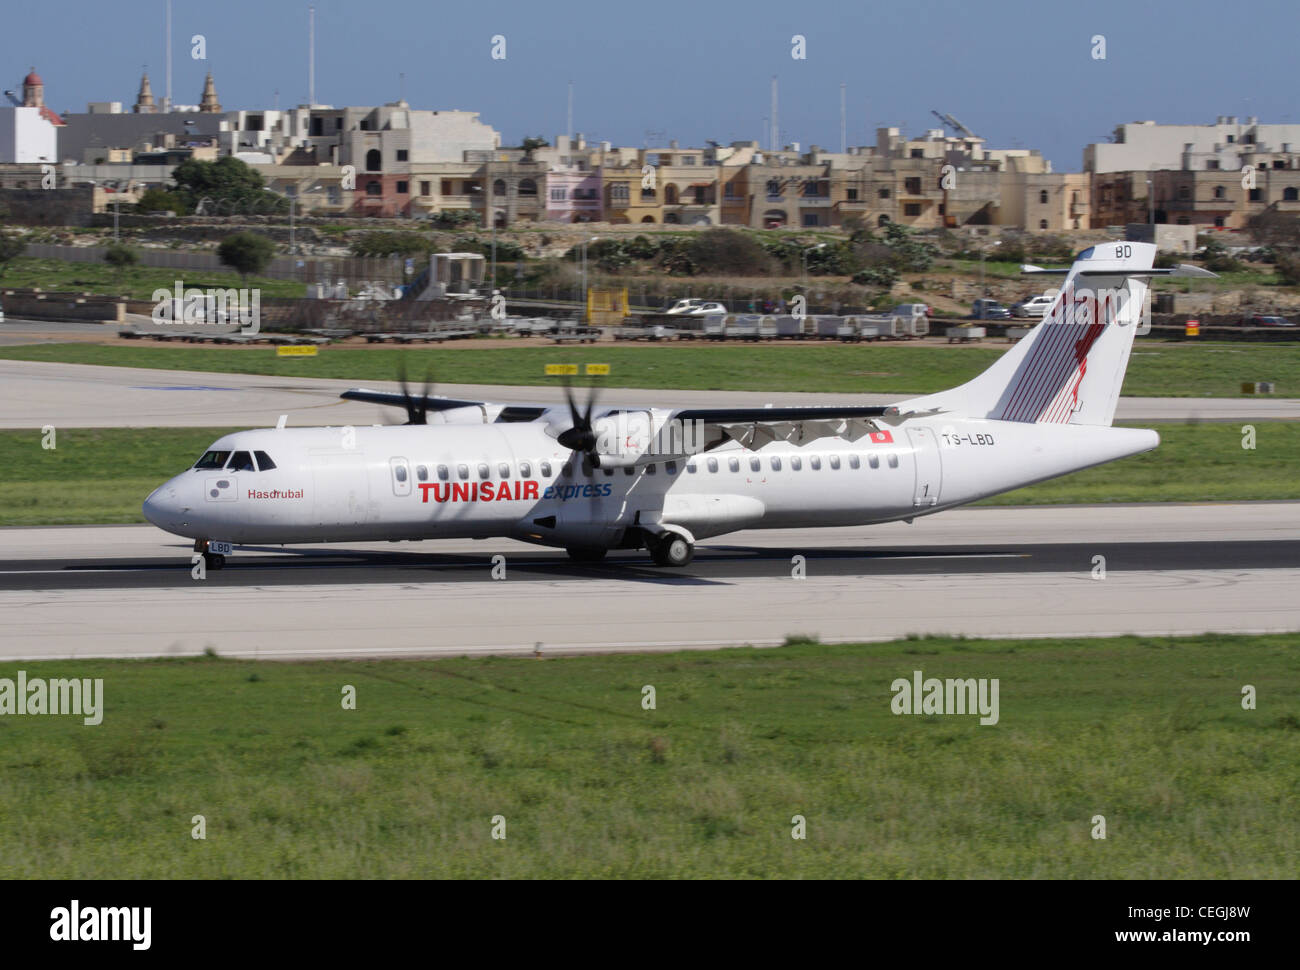 Short haul air travel. Tunisair Express ATR 72-500 turboprop regional airliner - Stock Image